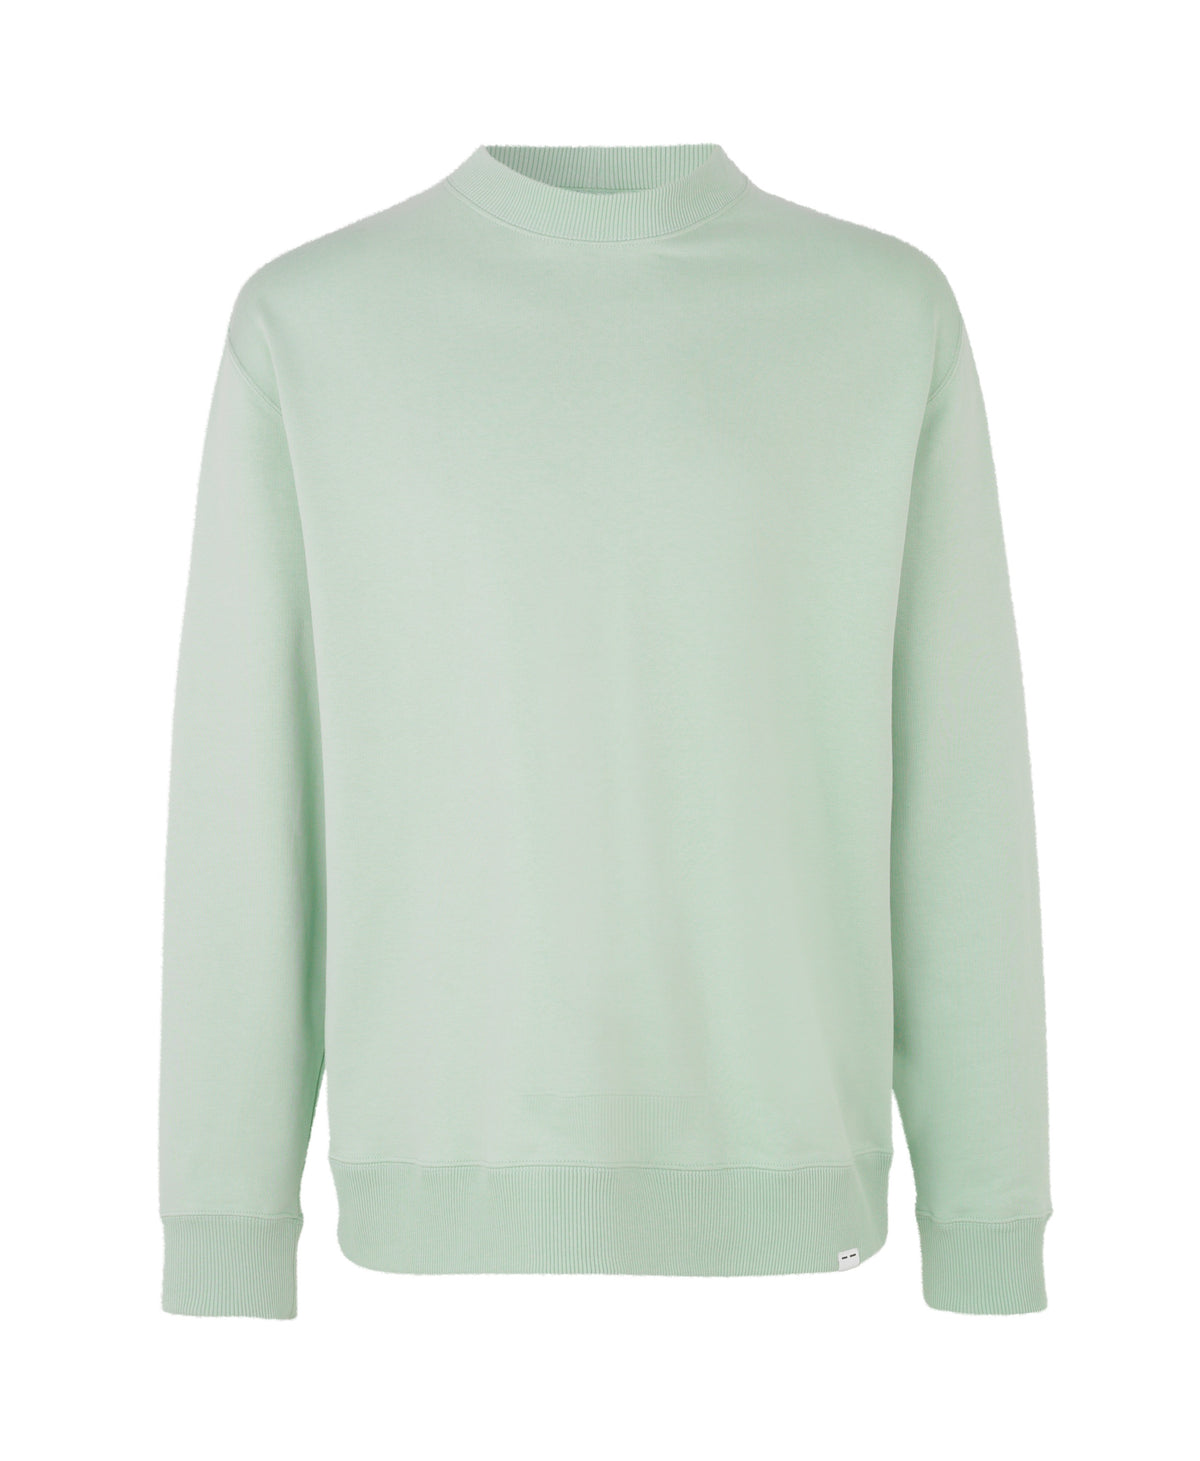 Toscan Crew Neck - Frosty Green